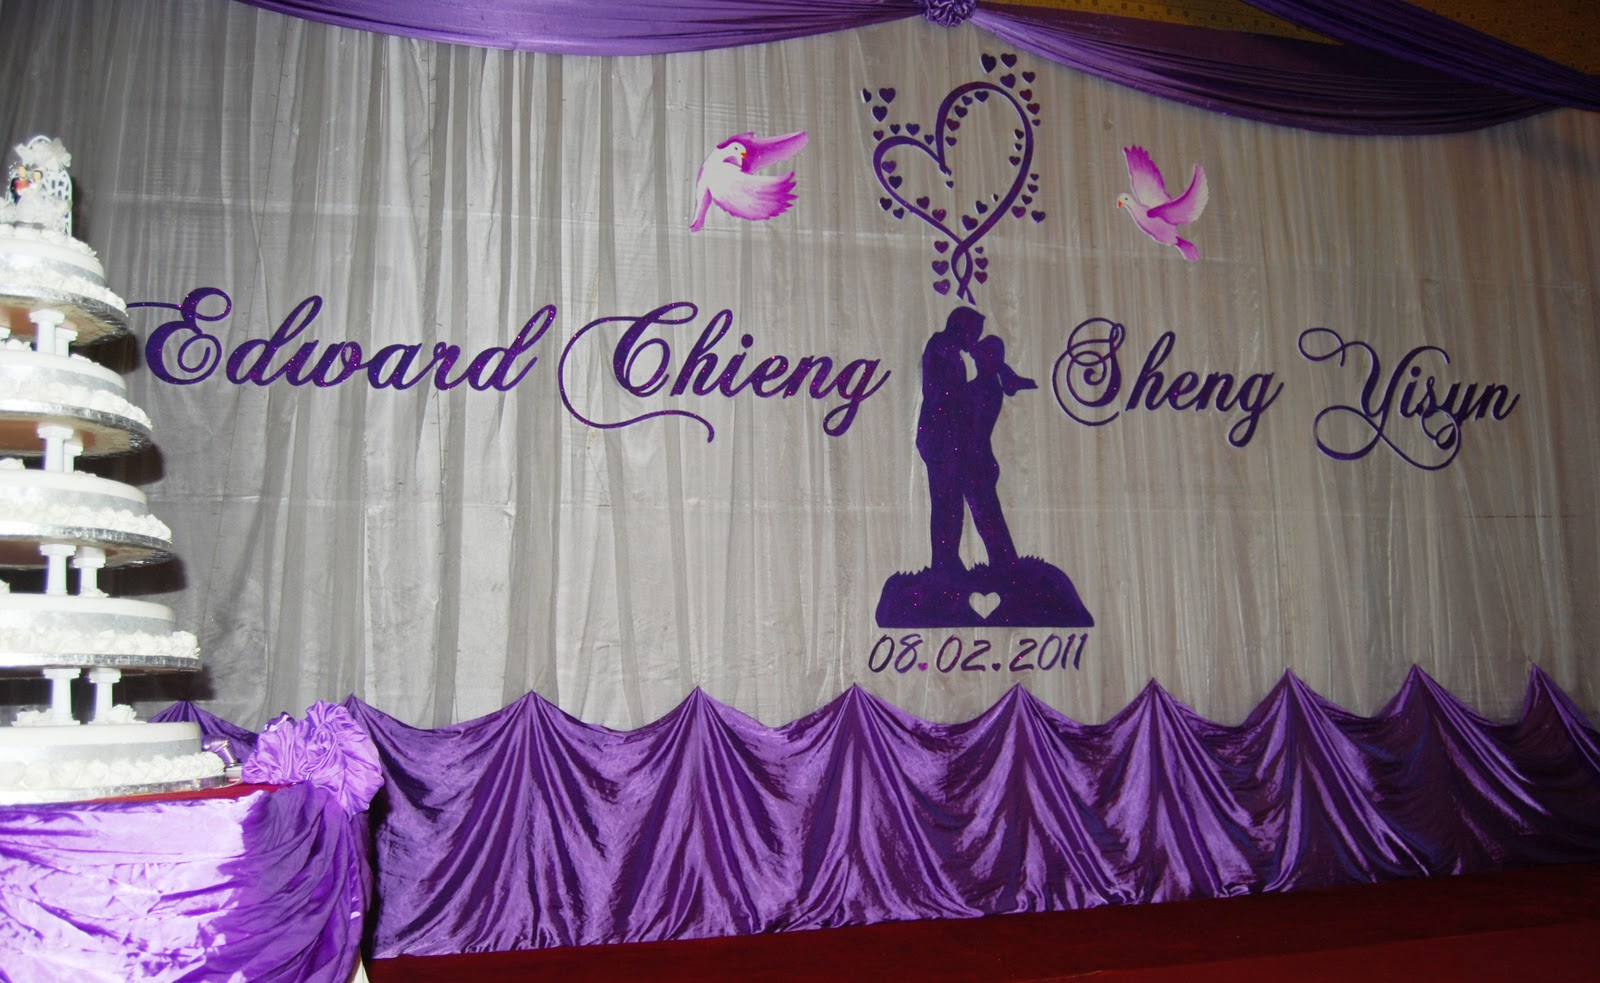 Wedding Backdrop: Wedding backdrop for Edward Chieng & Sheng Yisyn